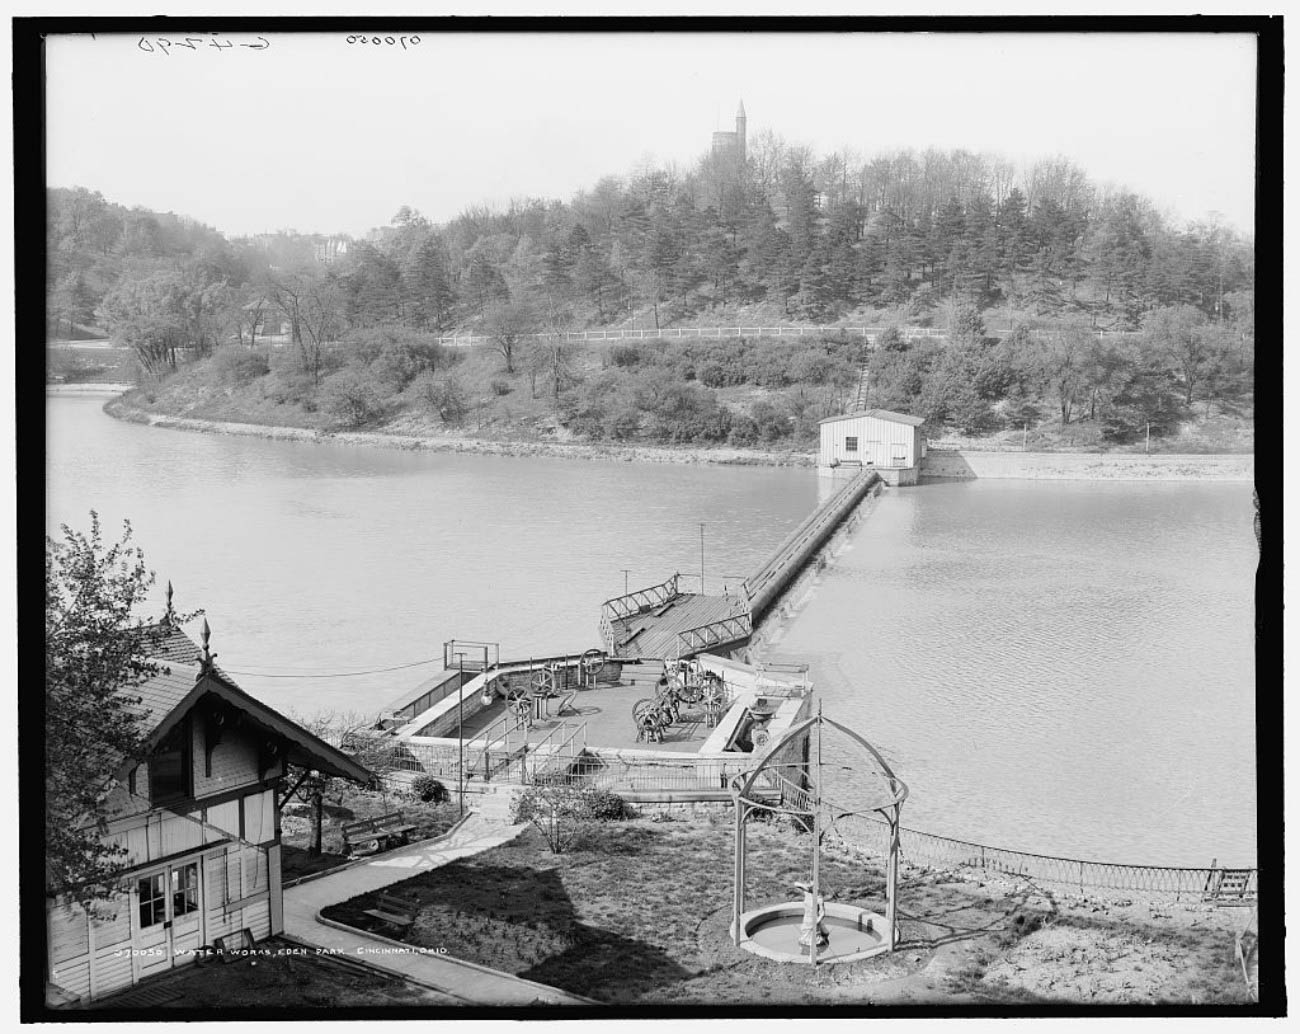 Chemical purification of city water began in 1907 at a new water facility upriver, but the Eden Park reservoir remained in use. / Image courtesy of Parks Bettman Library Archive // Published: 4.12.19